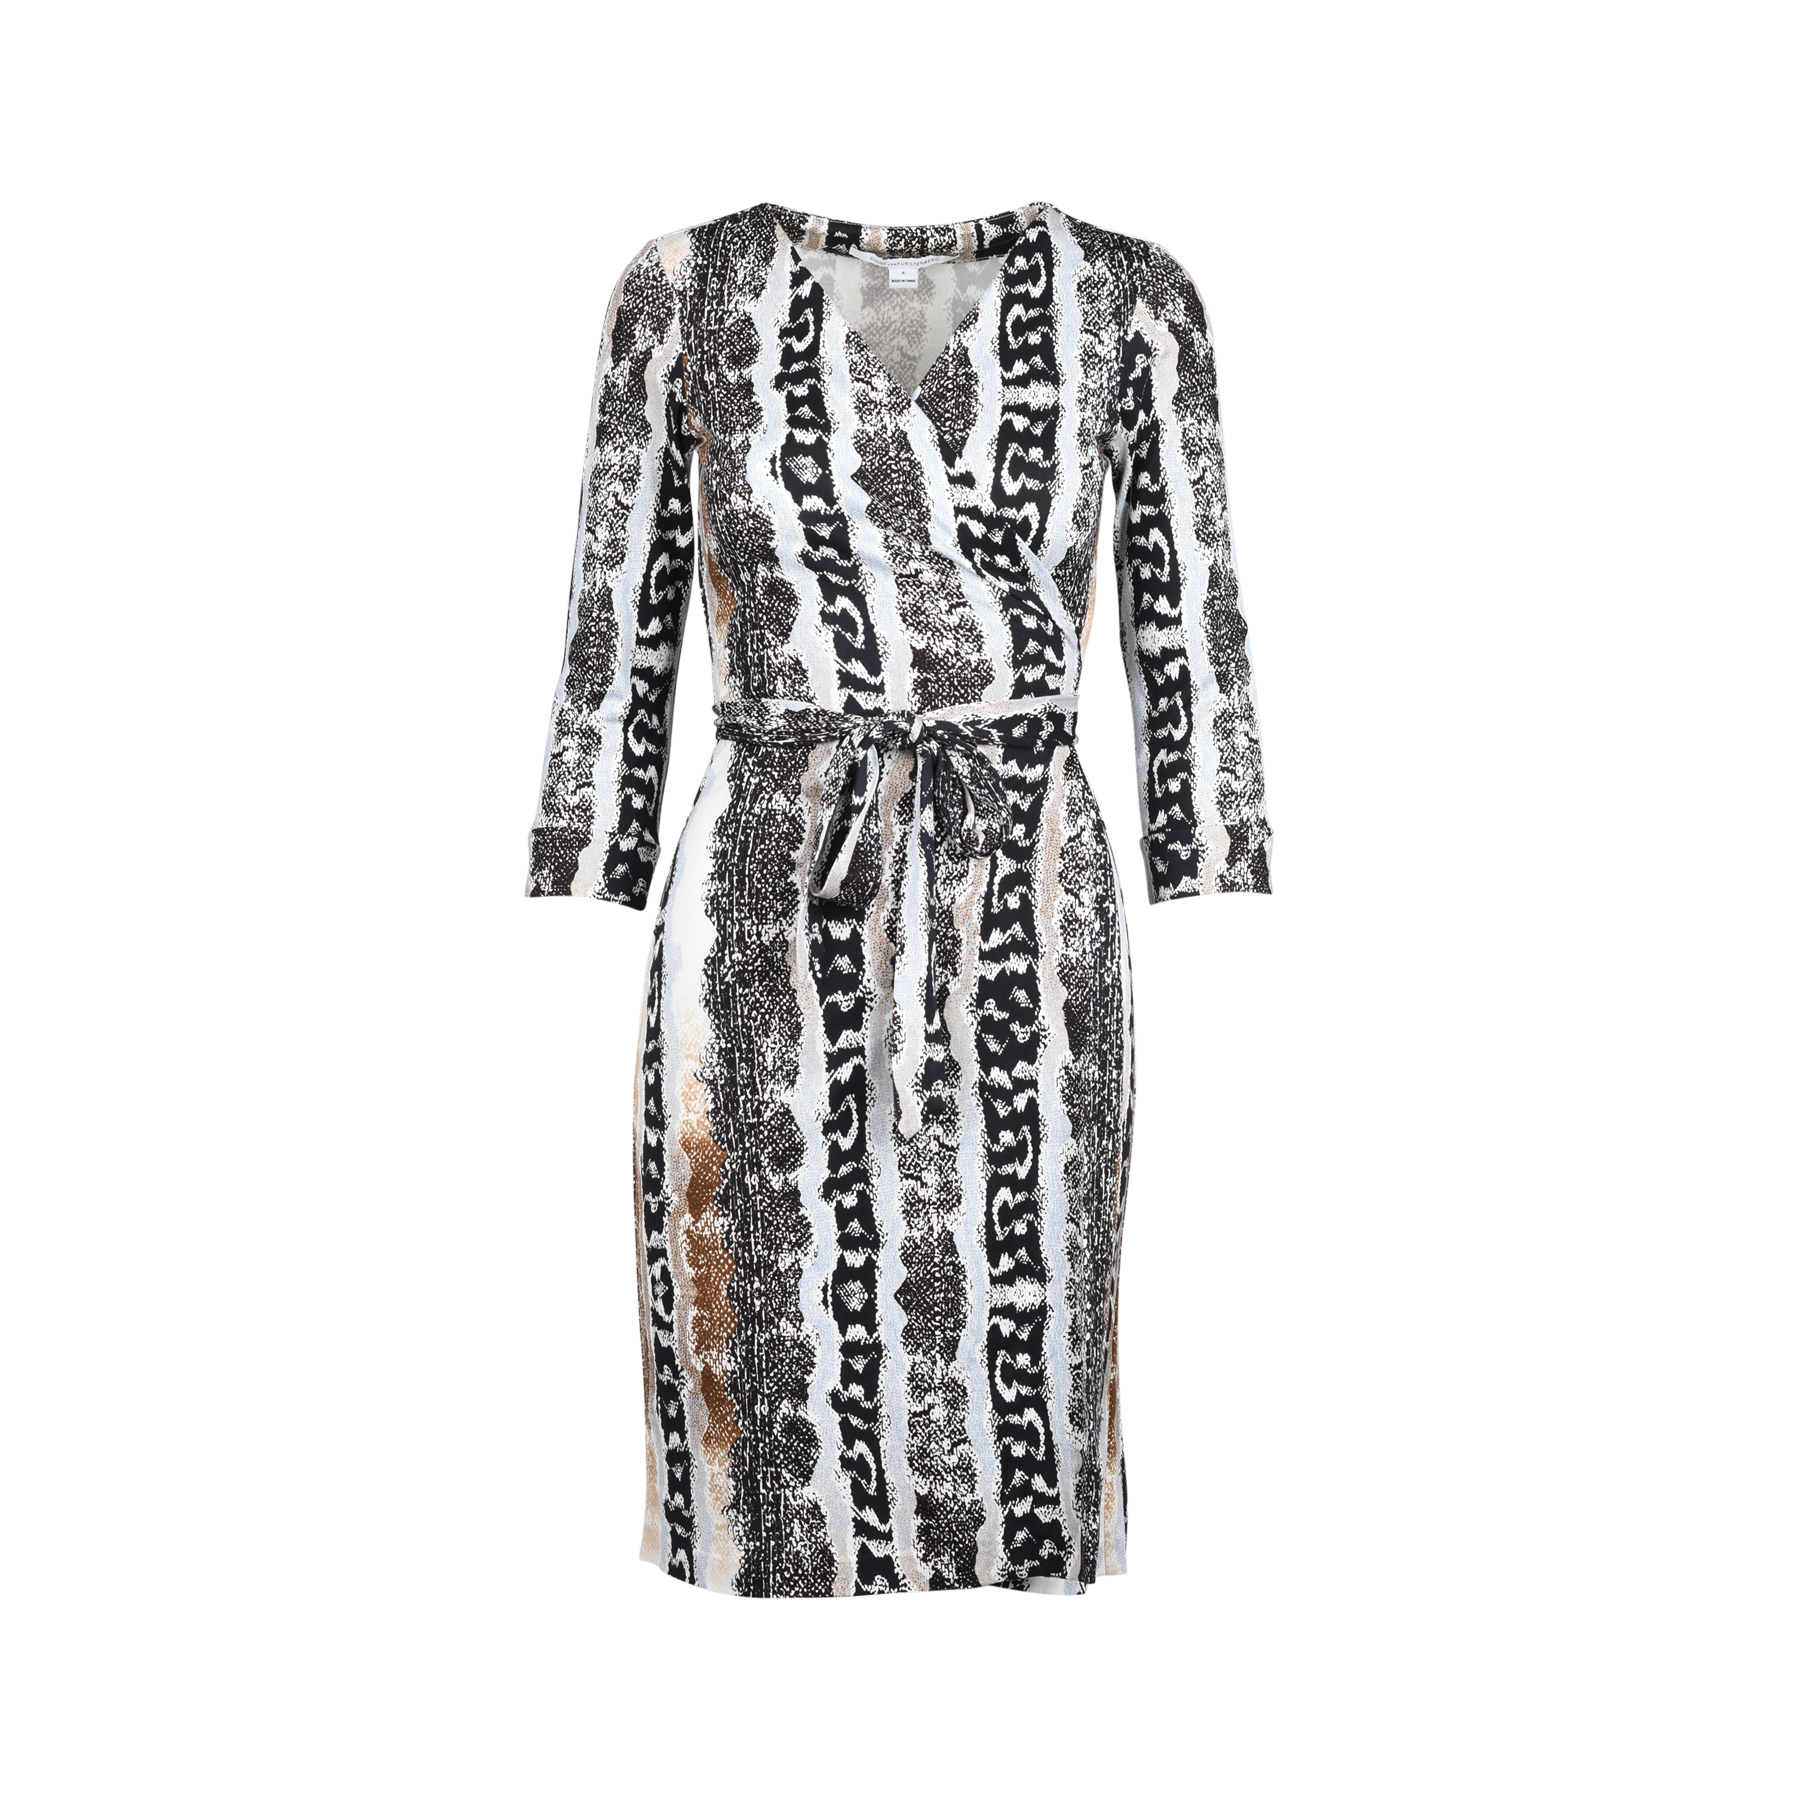 1f4770782 Authentic Second Hand Diane Von Furstenberg New Julian Two Wrap Dress  (PSS-401-00003) - THE FIFTH COLLECTION